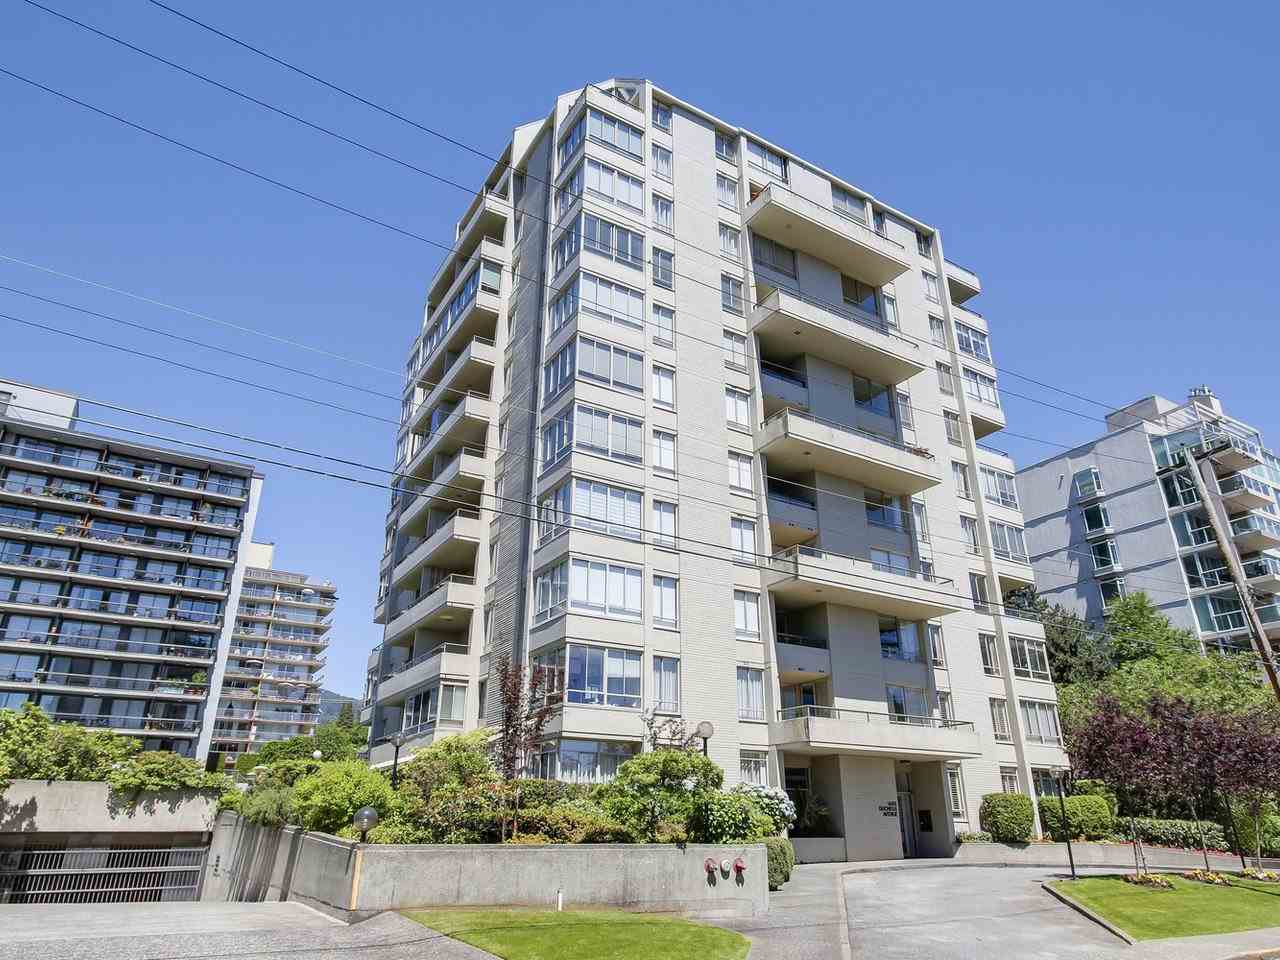 "Main Photo: 201 1485 DUCHESS Avenue in West Vancouver: Ambleside Condo for sale in ""The Mermaid"" : MLS(r) # R2181837"